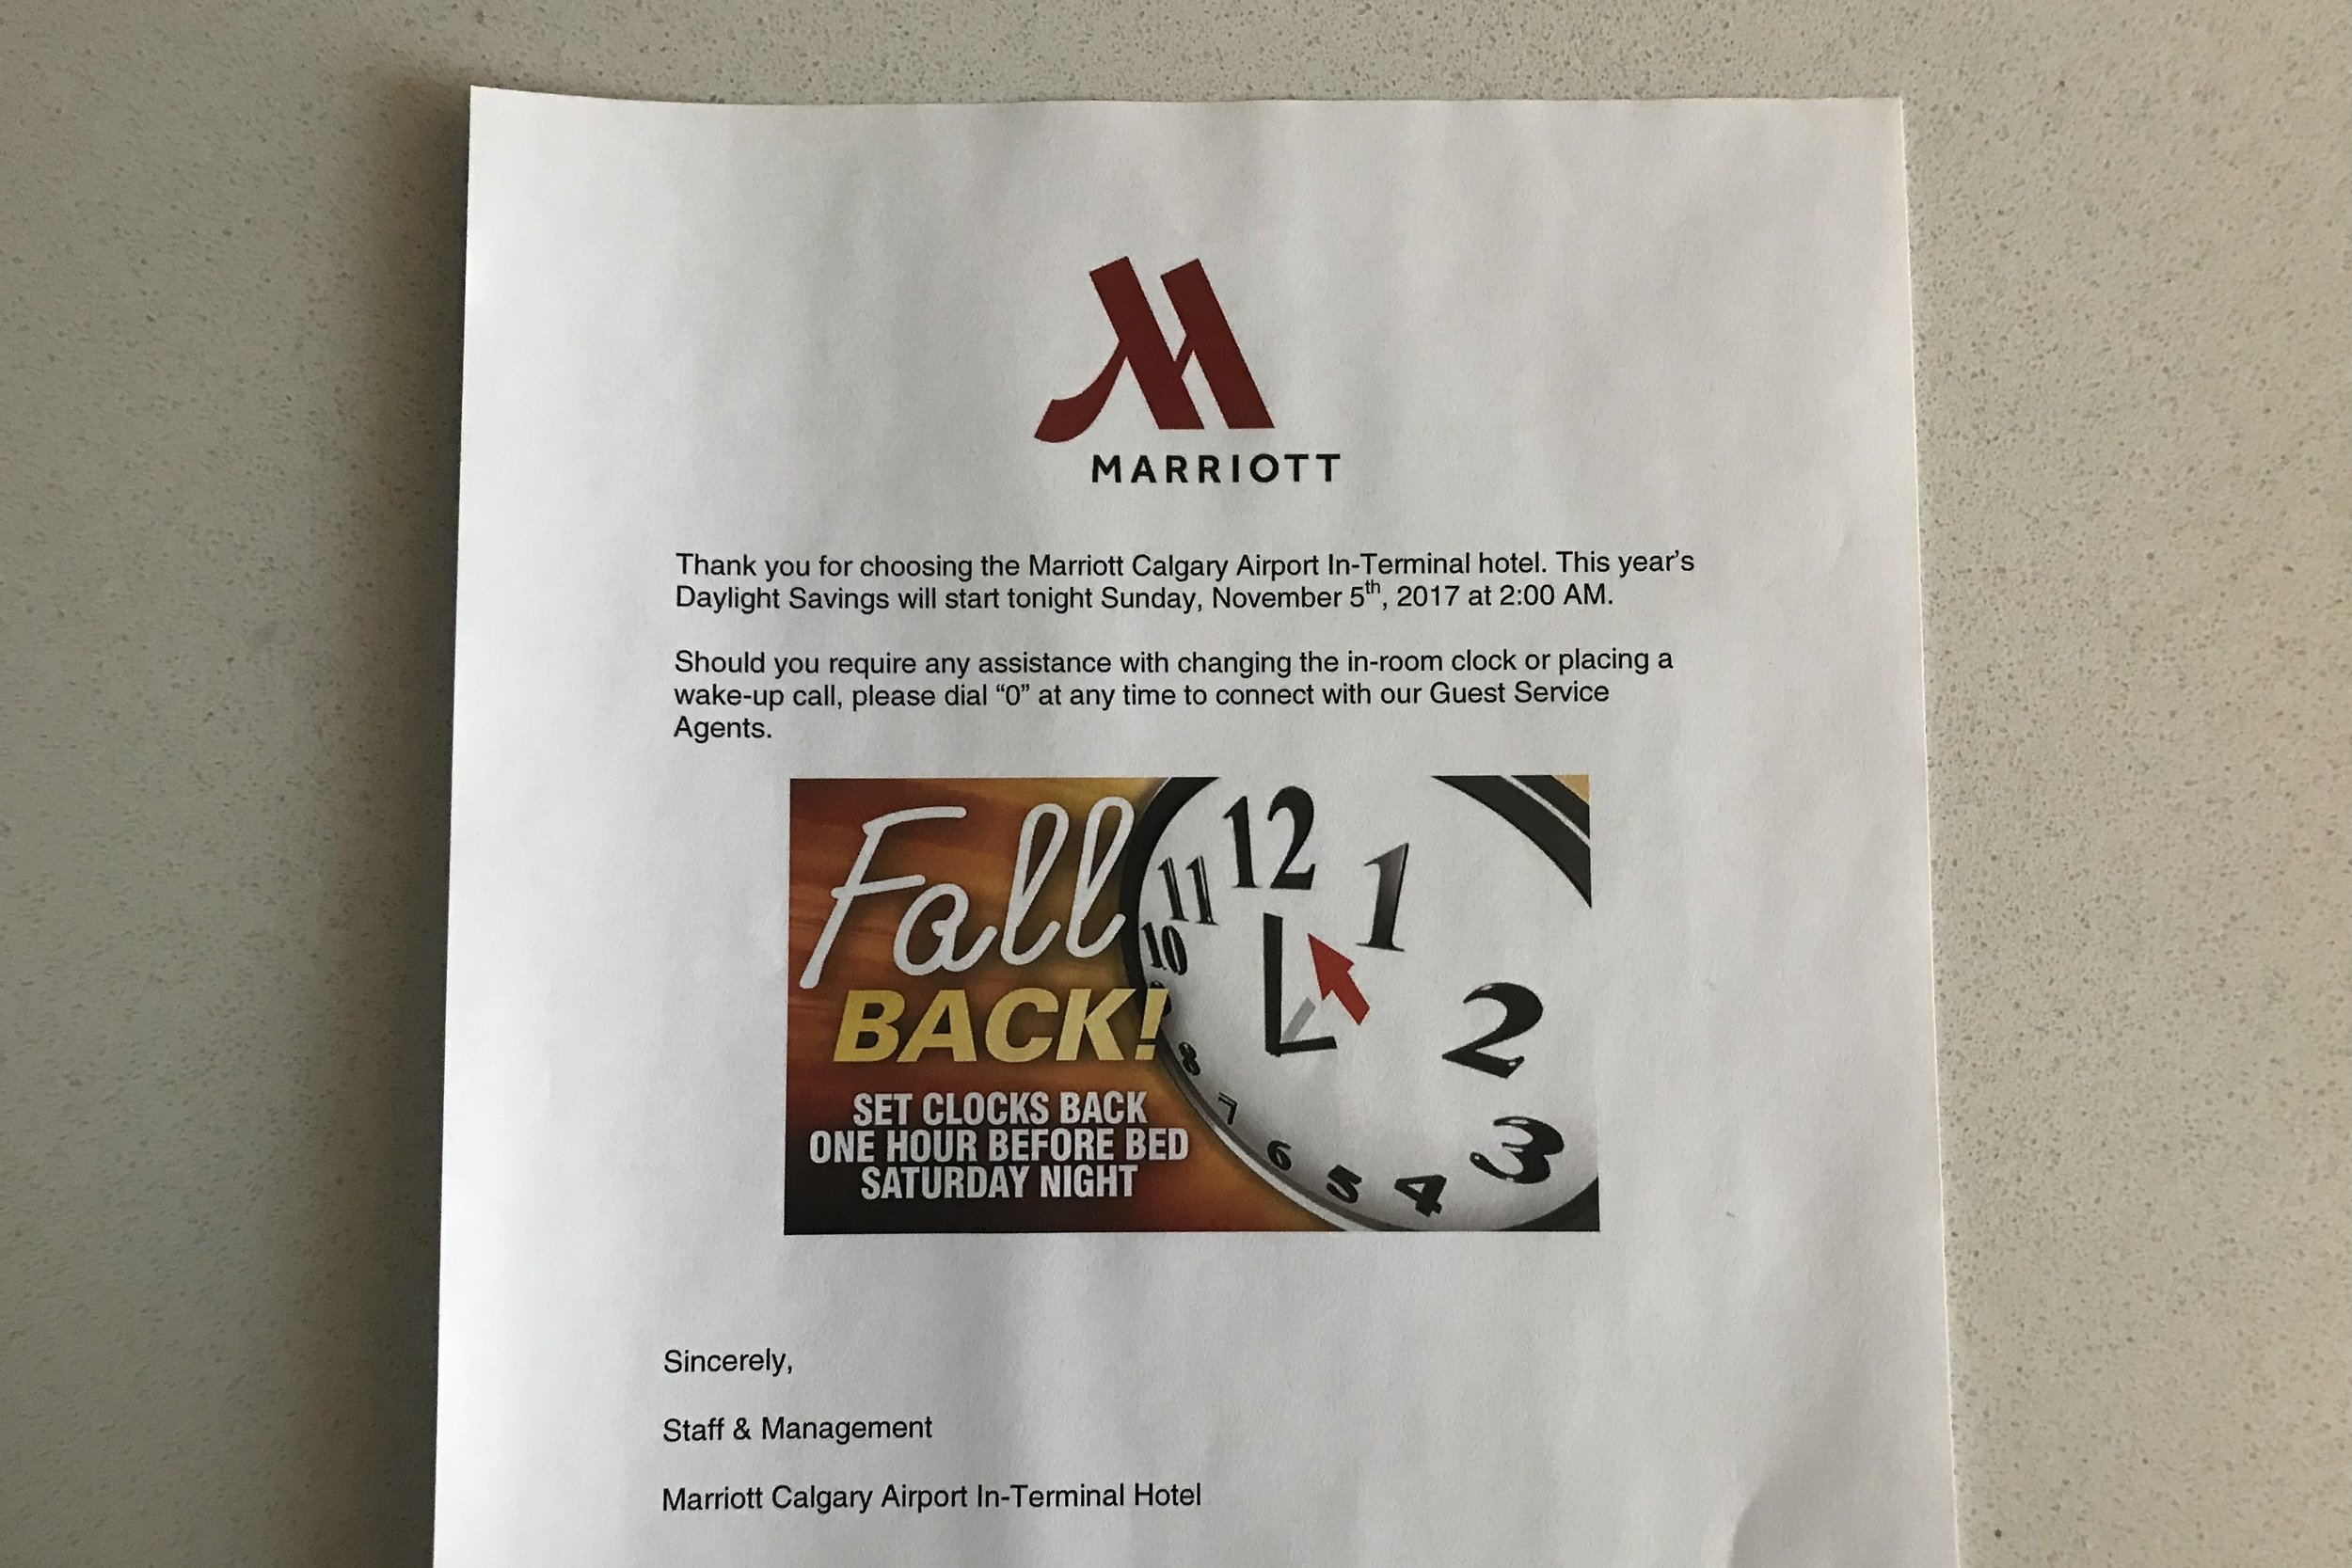 Marriott In-Terminal Hotel Calgary Airport – A kind note